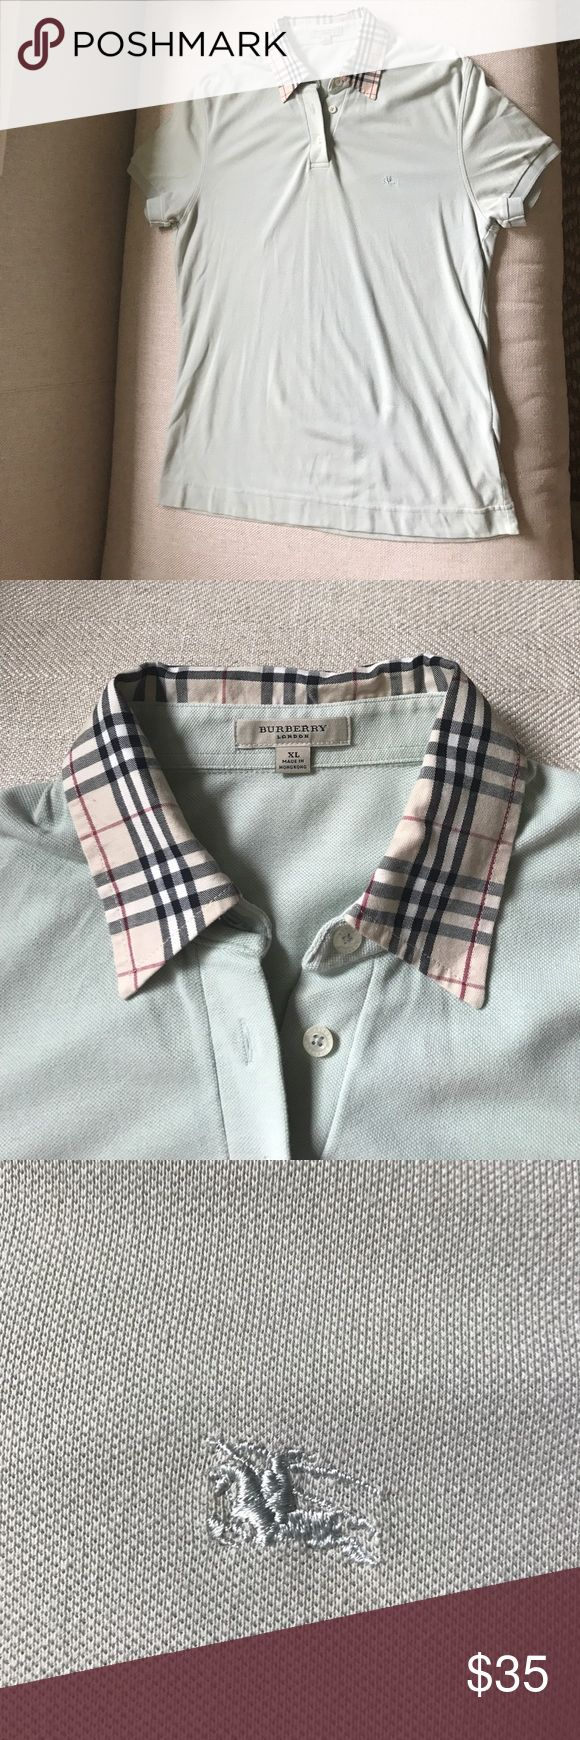 Burberry women's icon collared oxford shirt Classic piece for any wardrobe! Three buttons and classically styled Burberry print collar. The shirt is a mint green color that looks fabulous with white jeans or shorts or bluejeans. You can even dress it up. Burberry Tops Button Down Shirts